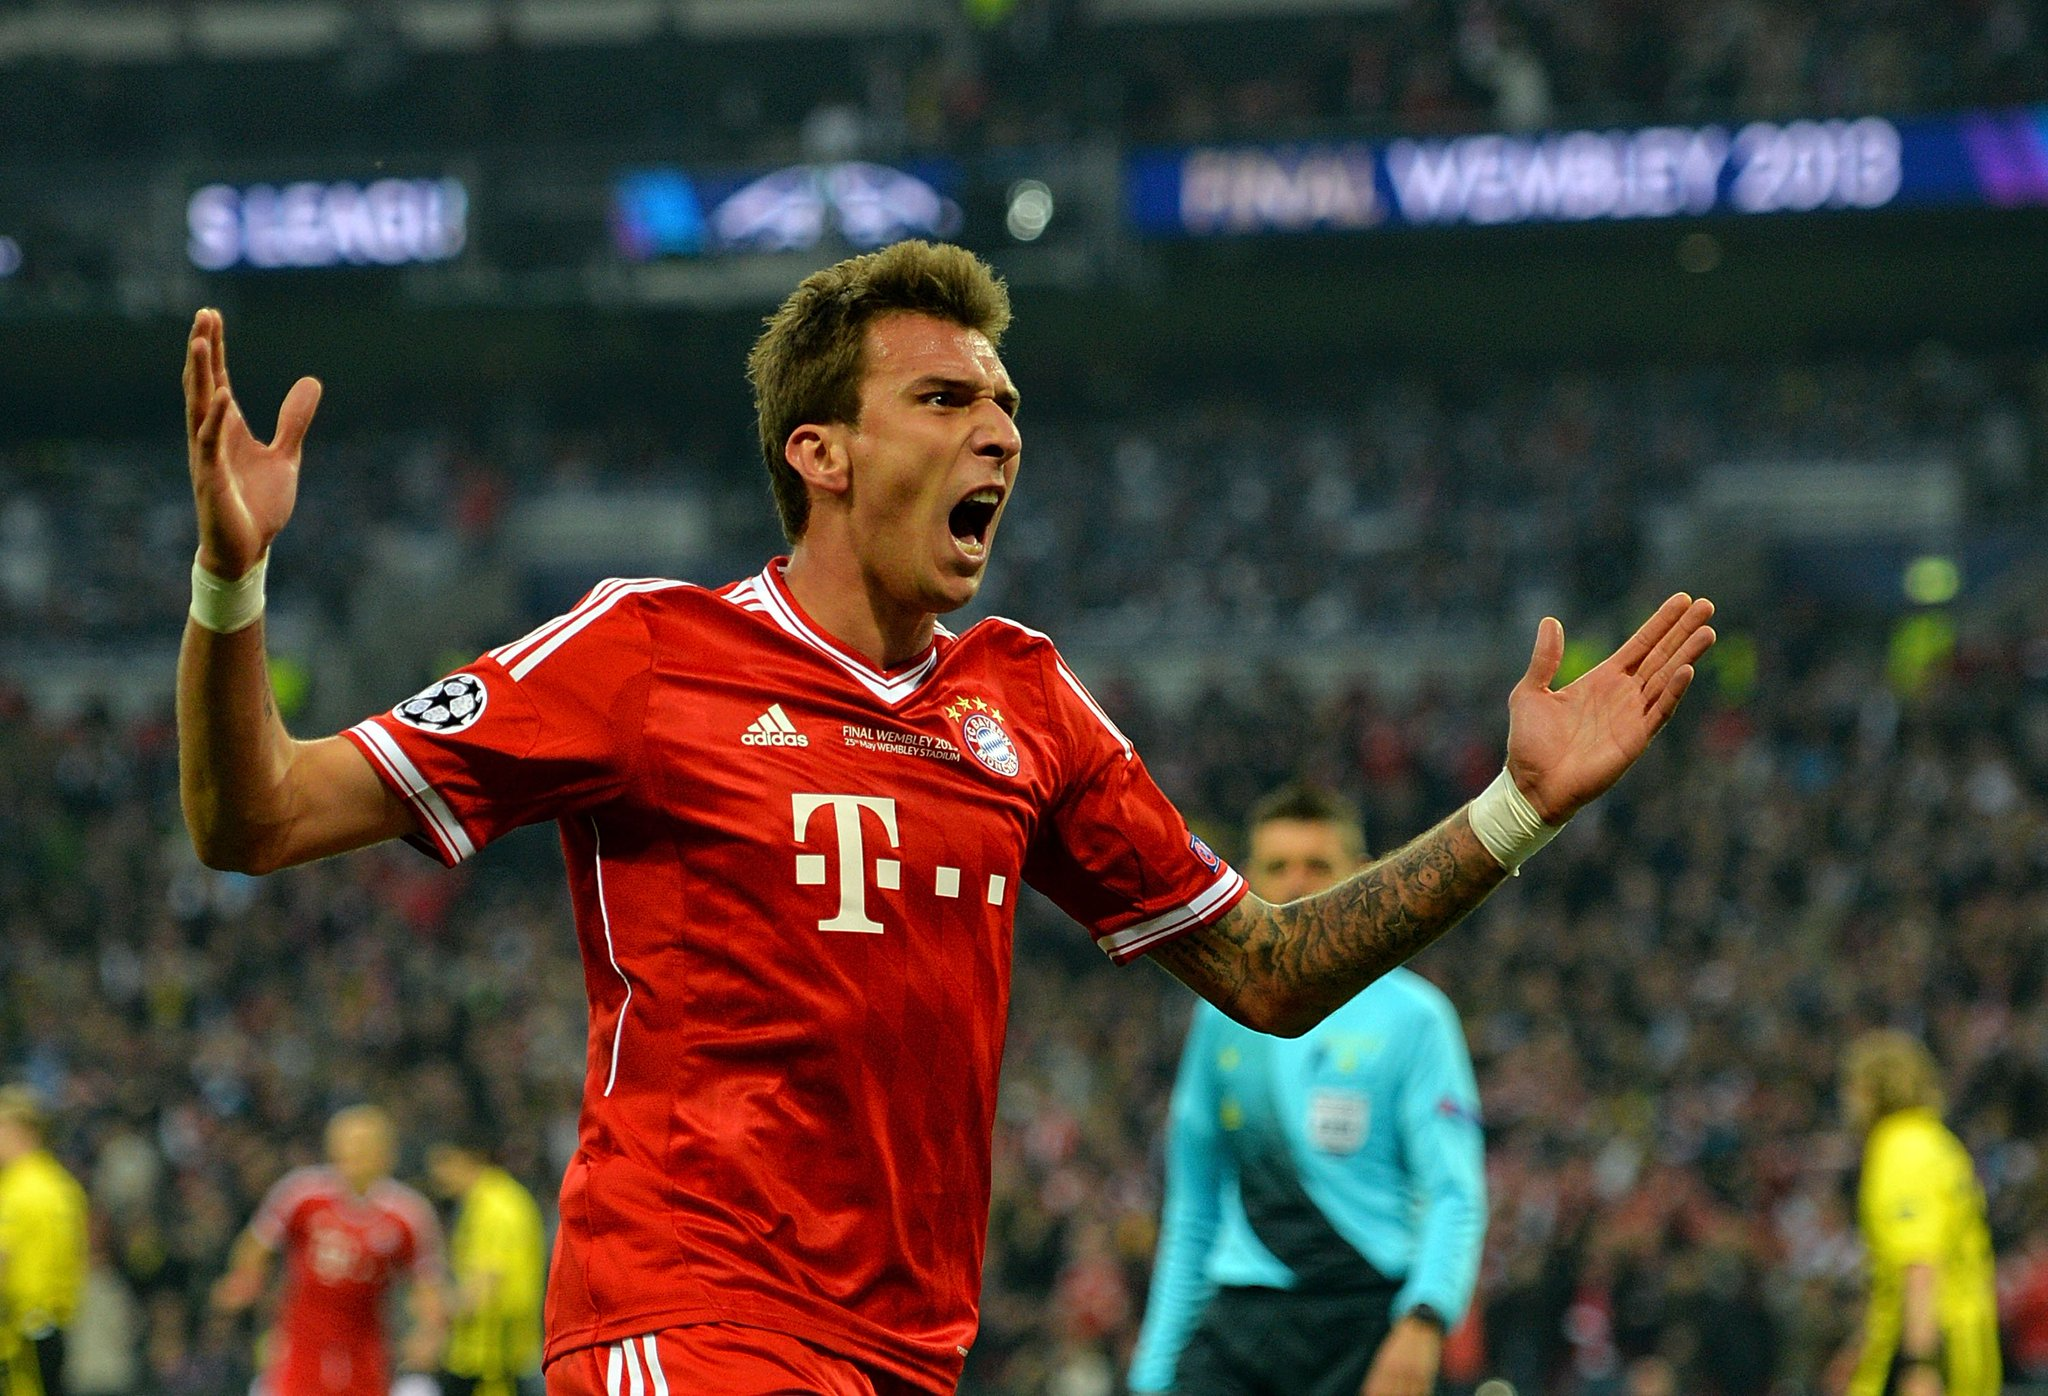 Wish 2013 #UCLfinal winner & goalscorer Mario Mandžukić a happy birthday! ������ https://t.co/cl5LIzL9rP